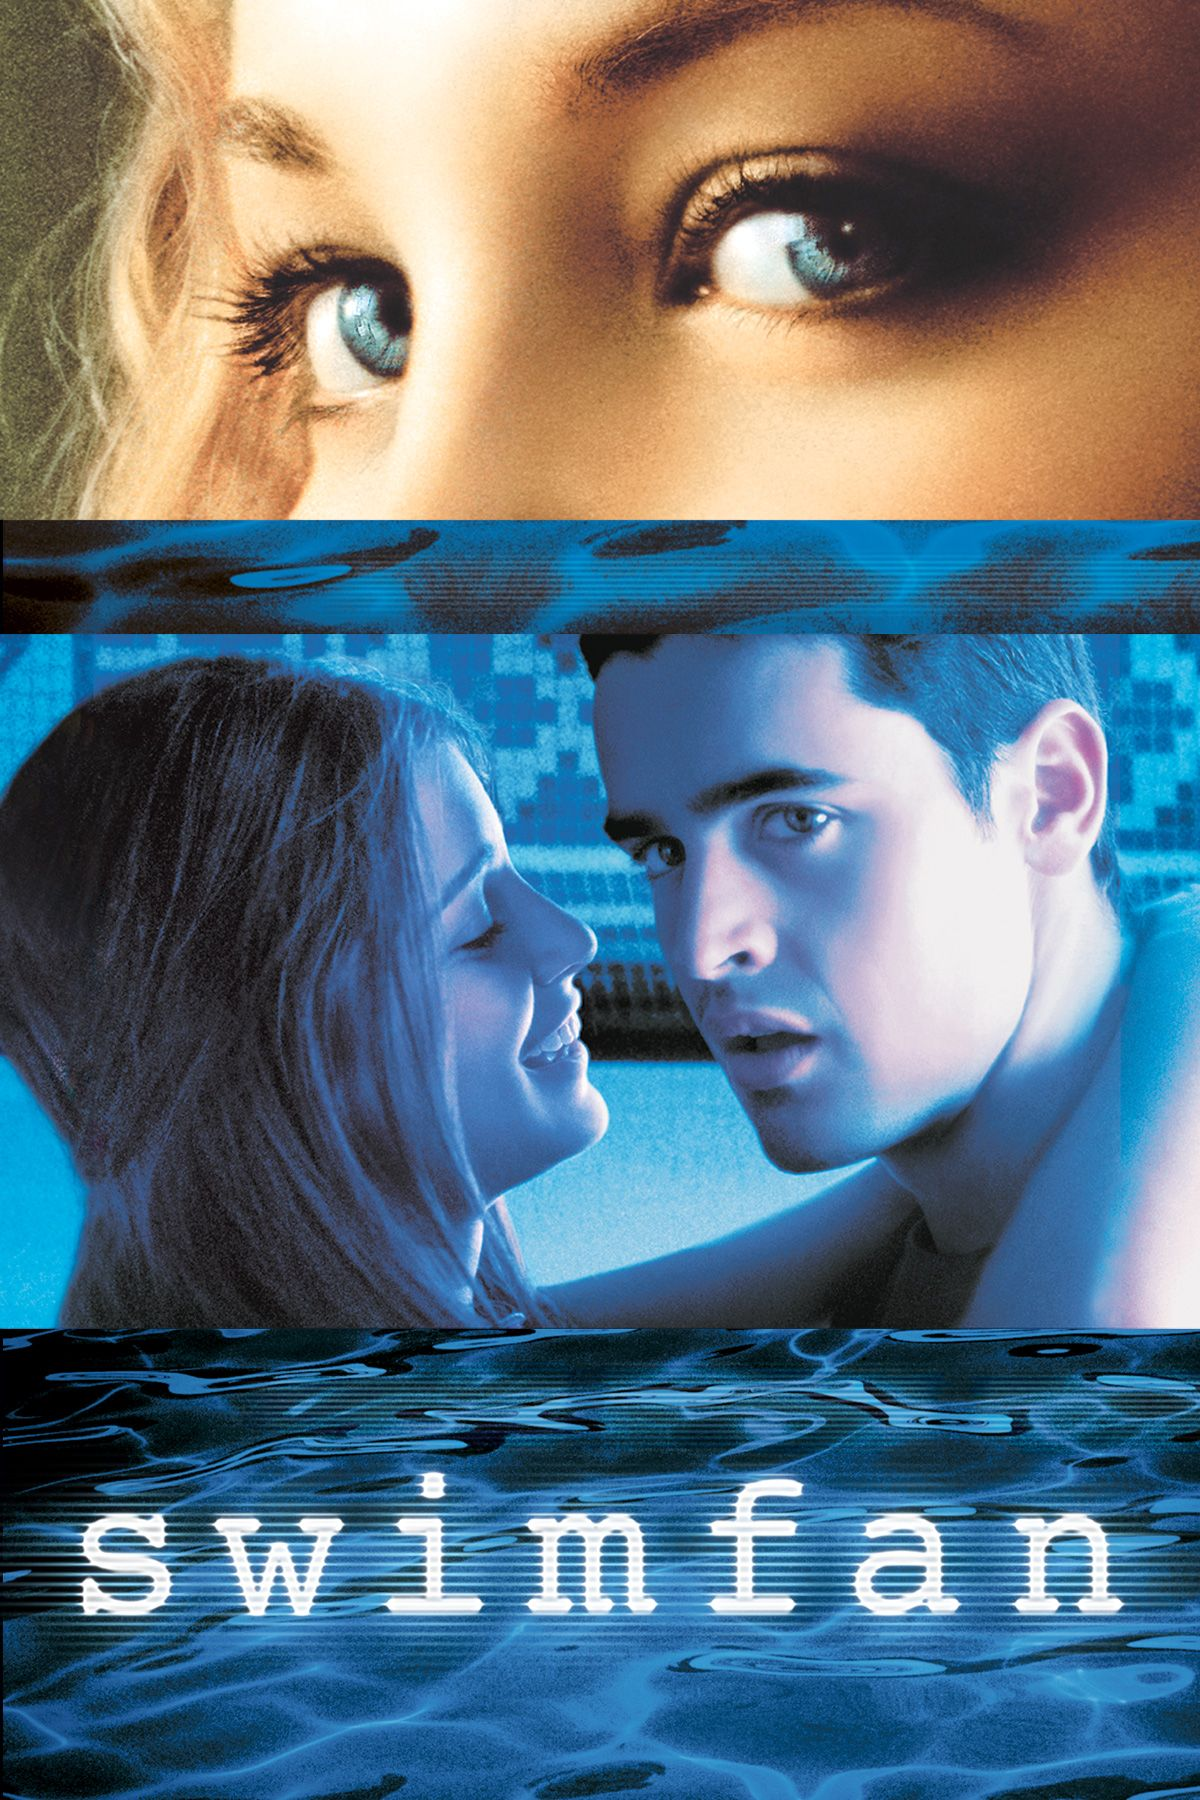 Bernadette Penotti swimfan | full movie | movies anywhere